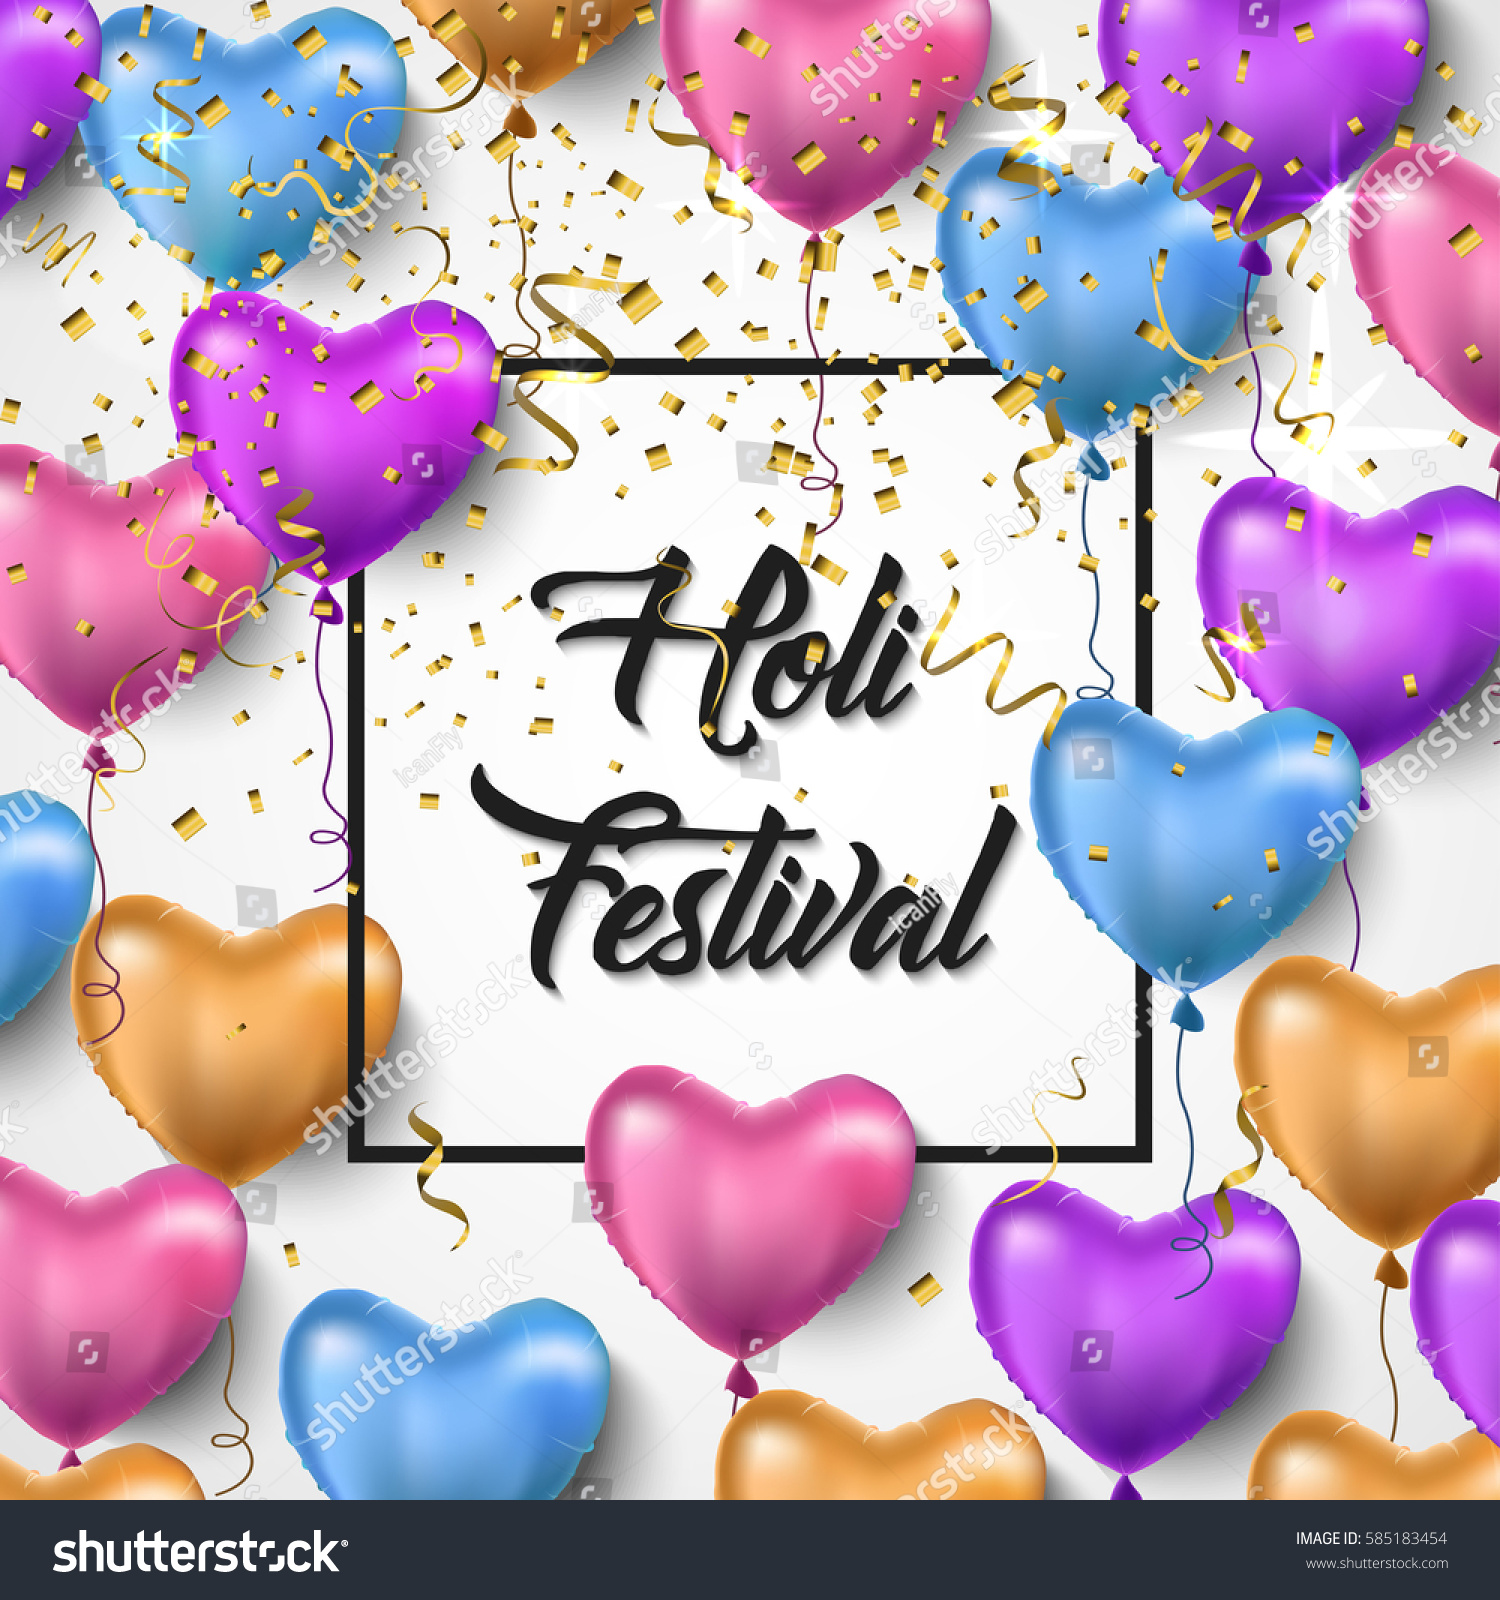 Holi festival vector illustration holi festival stock vector holi festival vector illustration holi festival greeting card design with colorful balloons and golden kristyandbryce Image collections